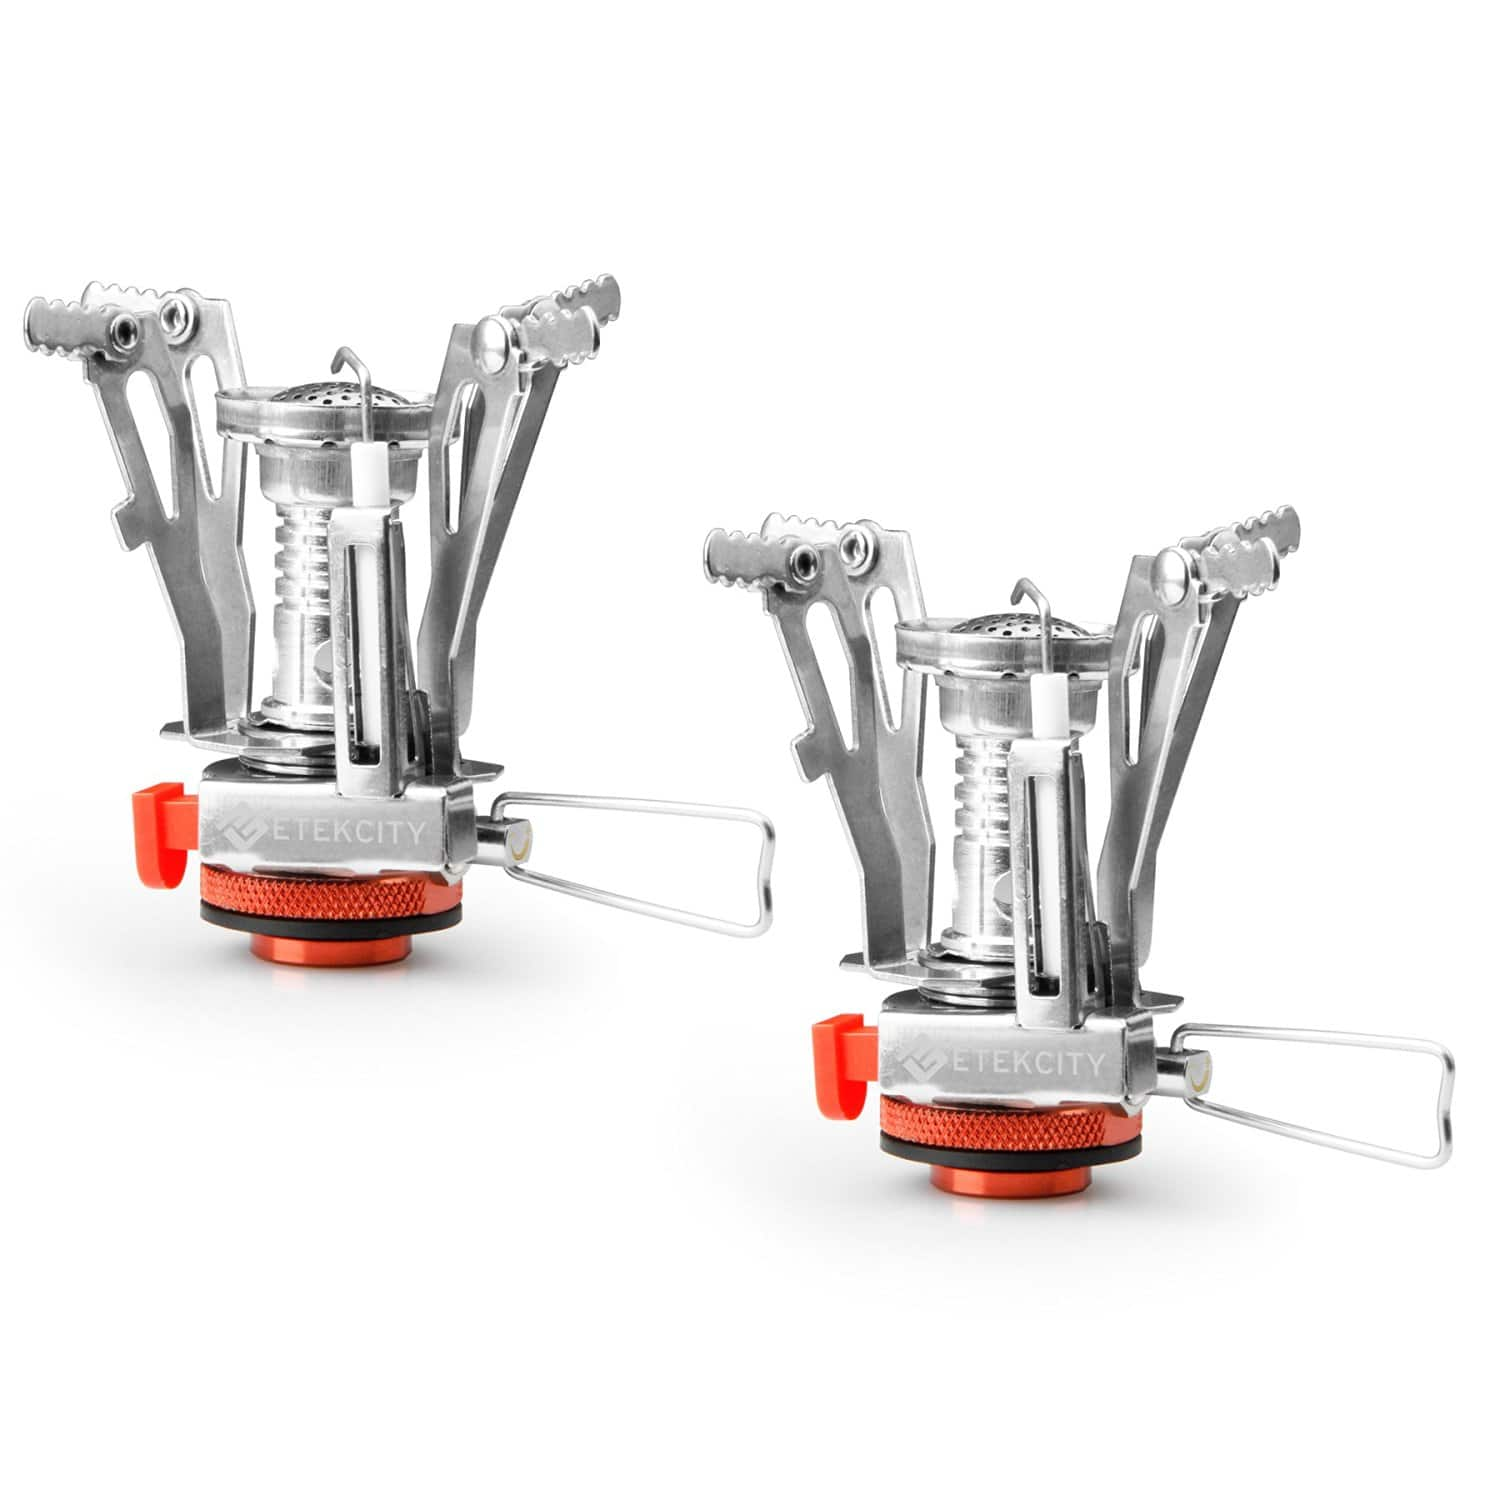 Etekcity 2 Pack Ultralight Mini Outdoor Backpacking Camping Stove with Piezo Ignition (Orange) $12.99 + Free Ship with Prime